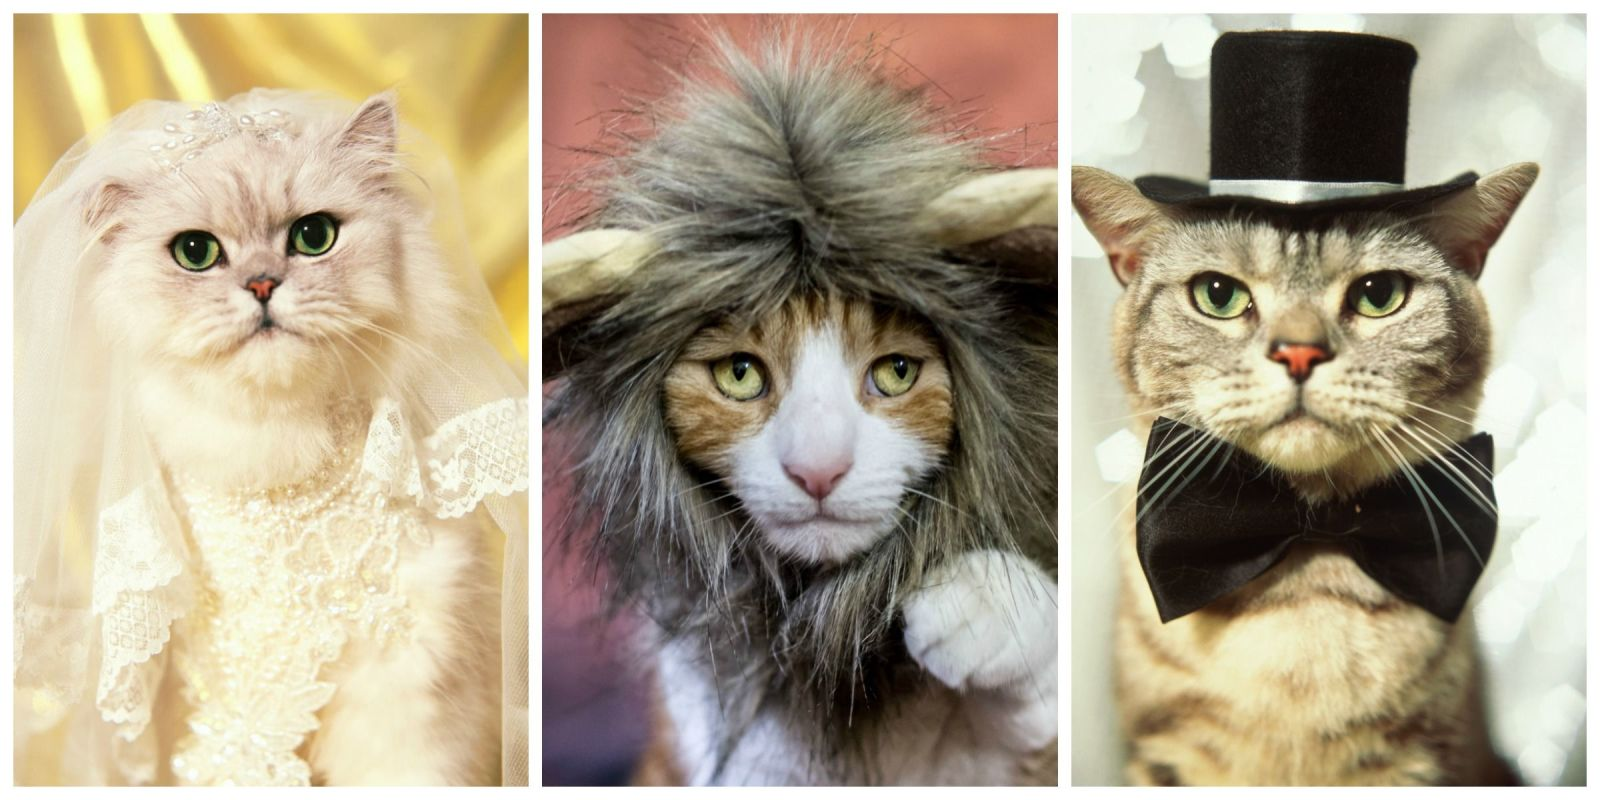 30 pet cat halloween costumes 2017 cute ideas for cat costumes - Halloween Costumes For Kittens Pets